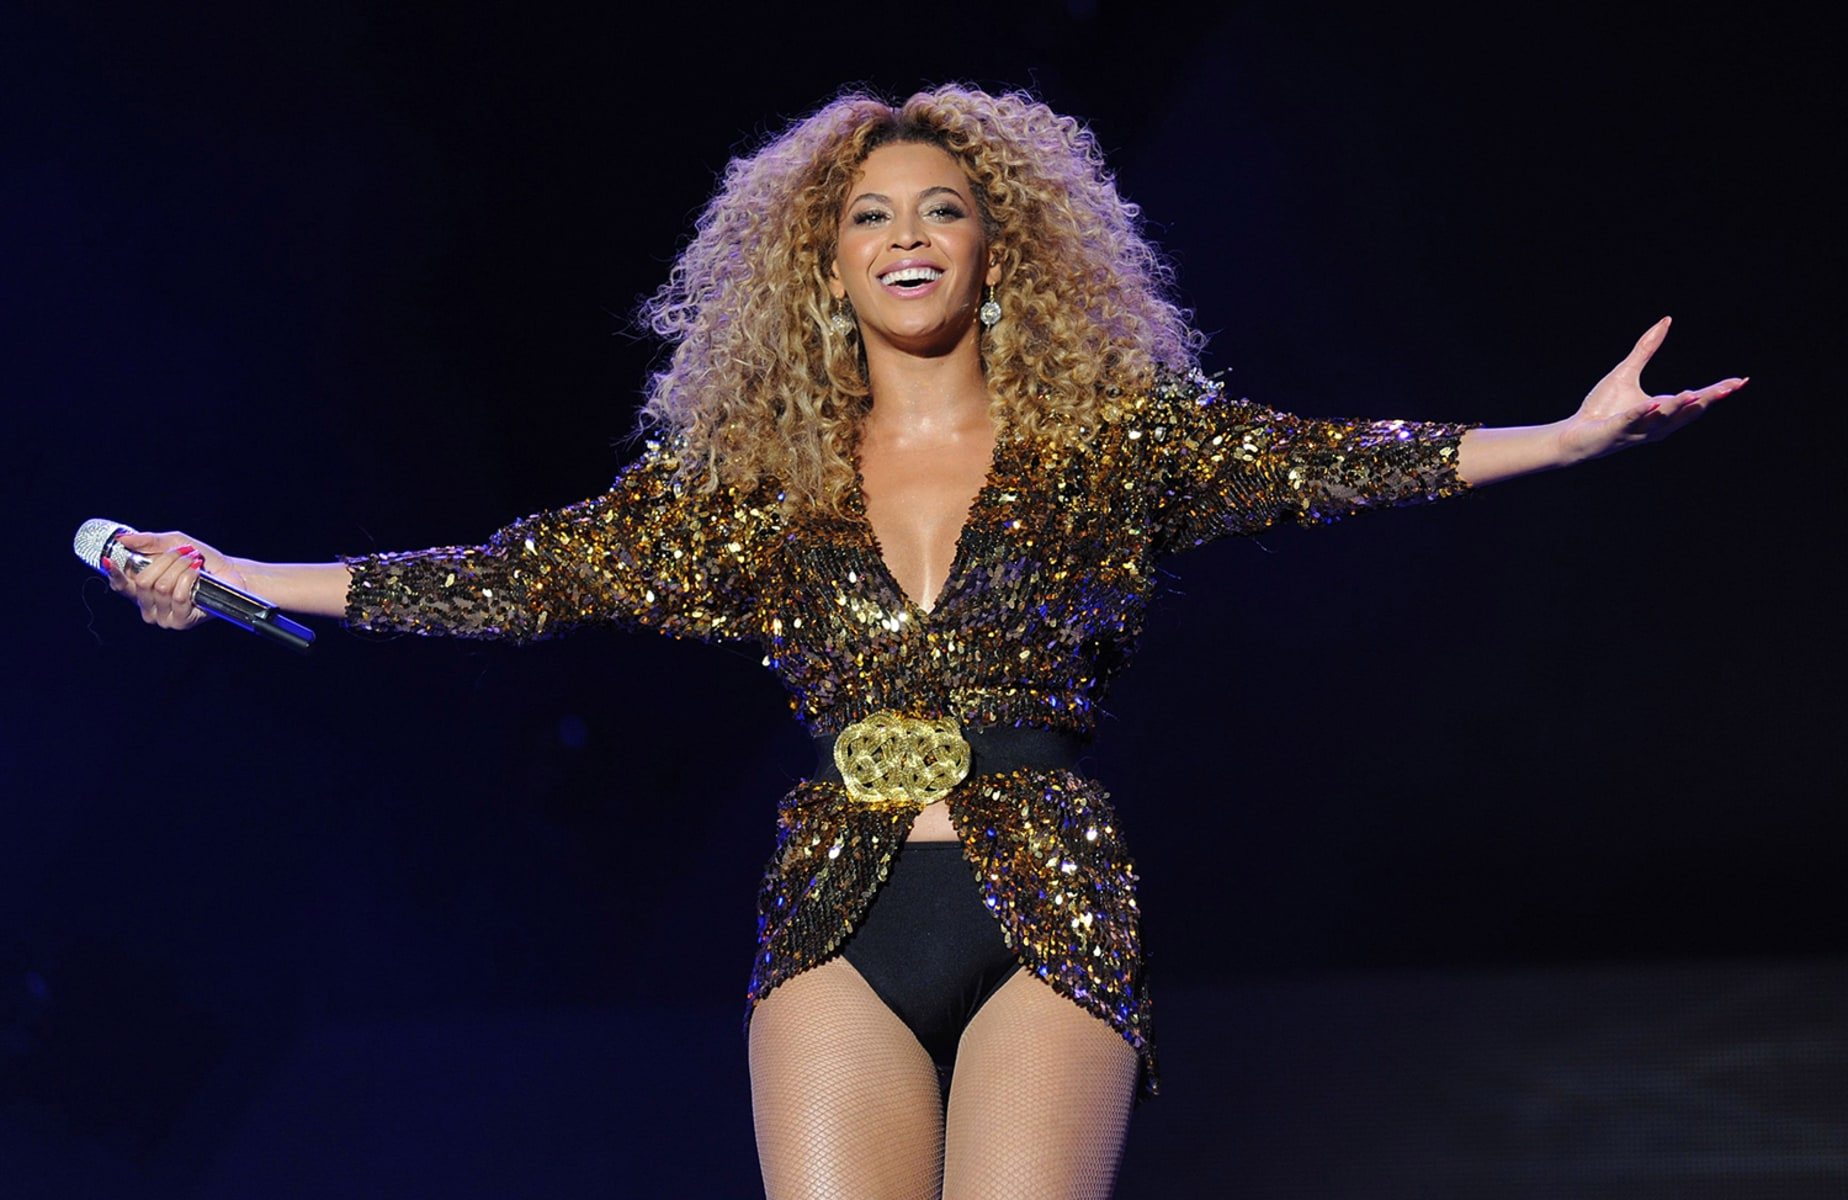 See The Singer S Latest Hair: Beyonce's Hair Evolution: See The Singer's Stunning Styles